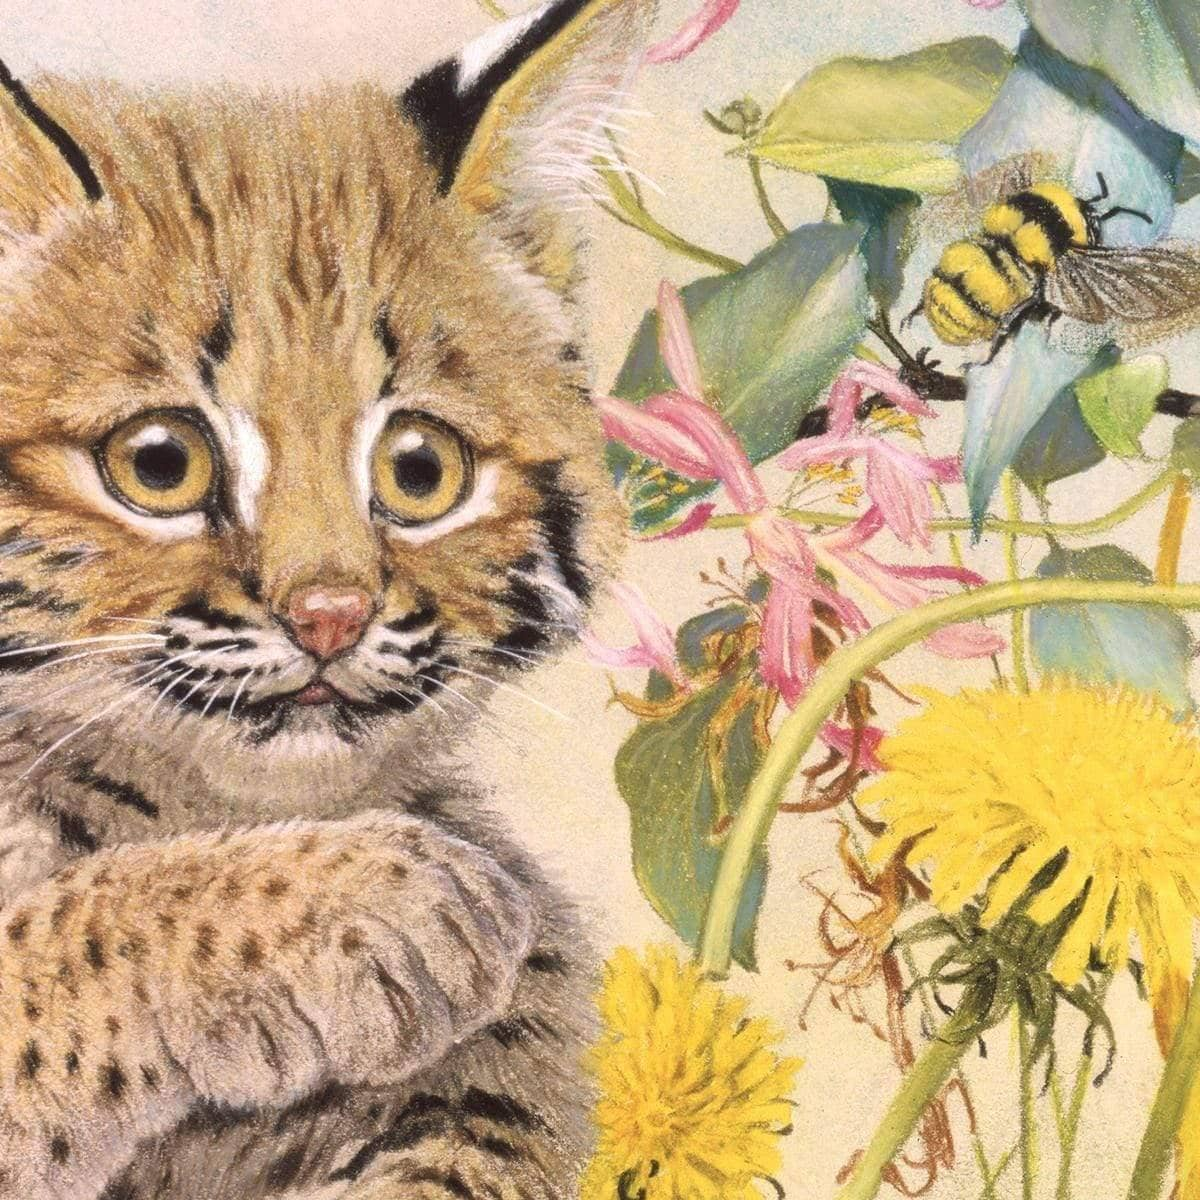 Bobcat Cub - Art Print by Glen Loates from the Glen Loates Store